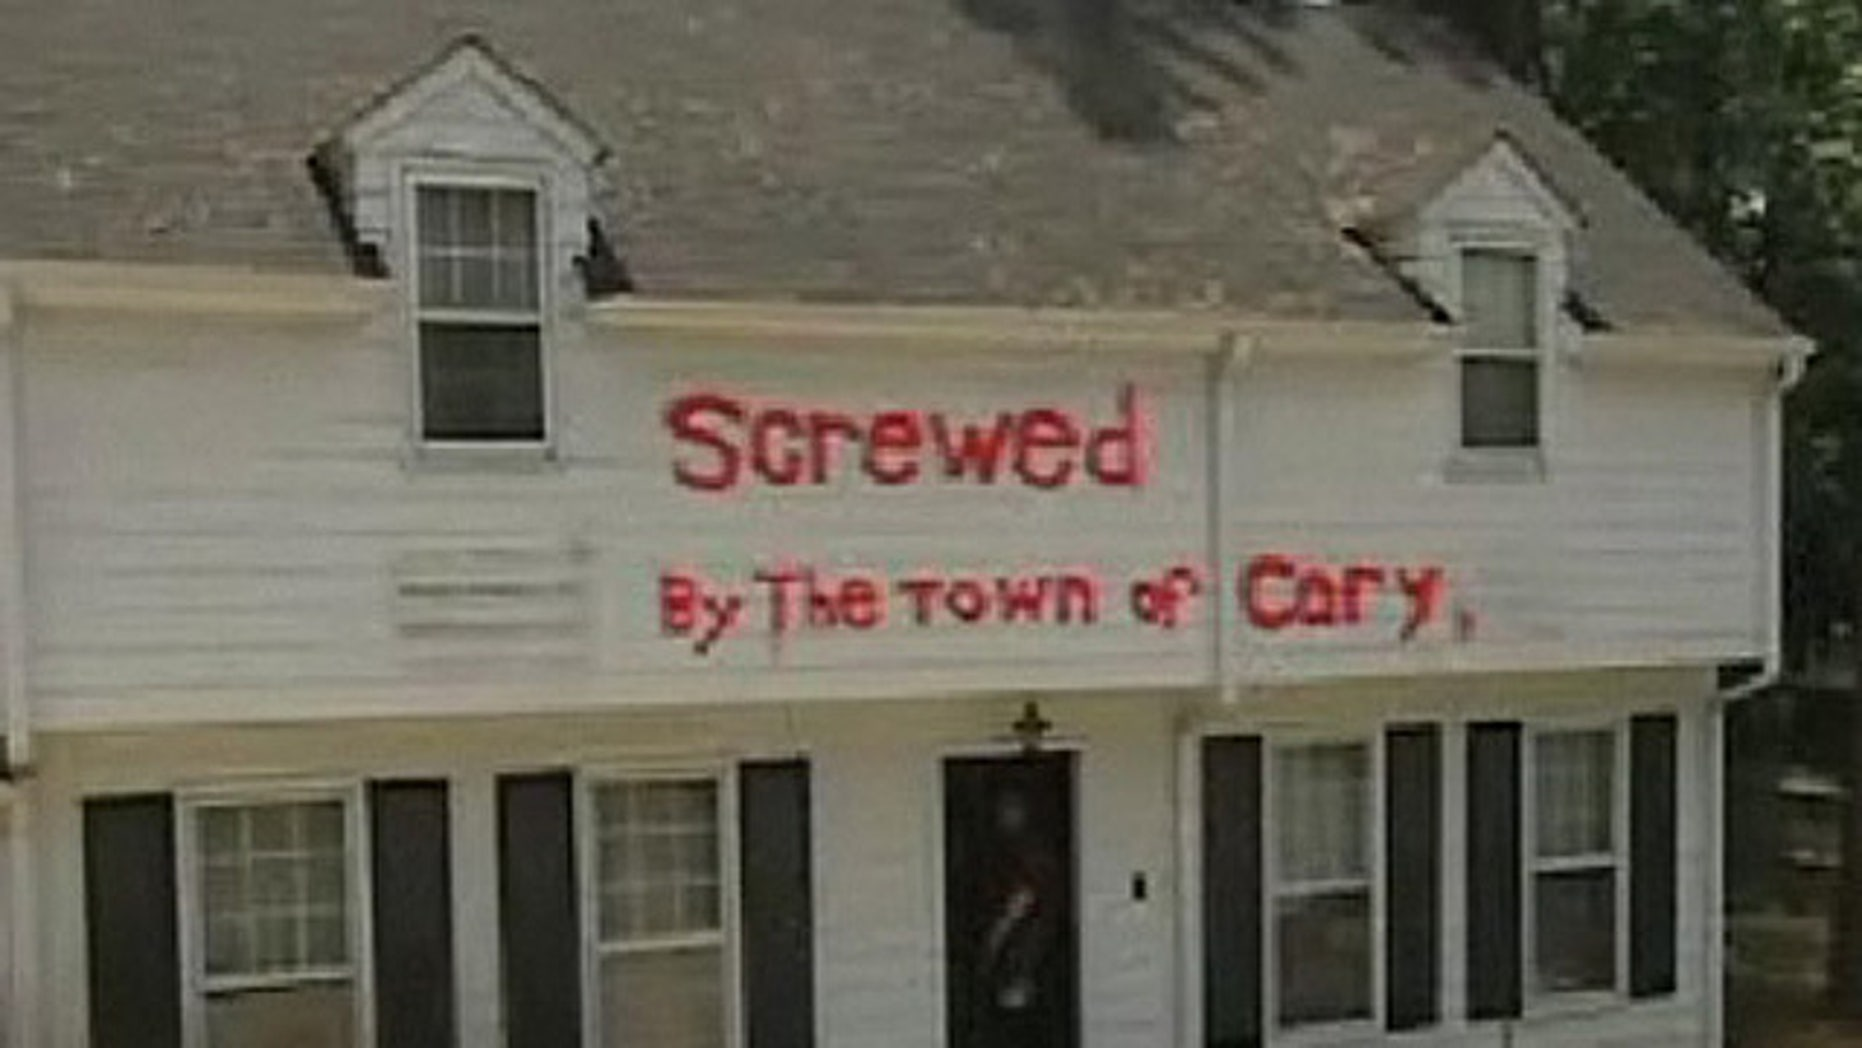 """In 2009, David Bowden sued when town officials tried to fine him for a sign in his yard that read """"Screwed by the town of Cary"""" painted in neon orange. Bowden claims his home was damaged by runoff that he blames on local road construction. (MyFox8.com)"""